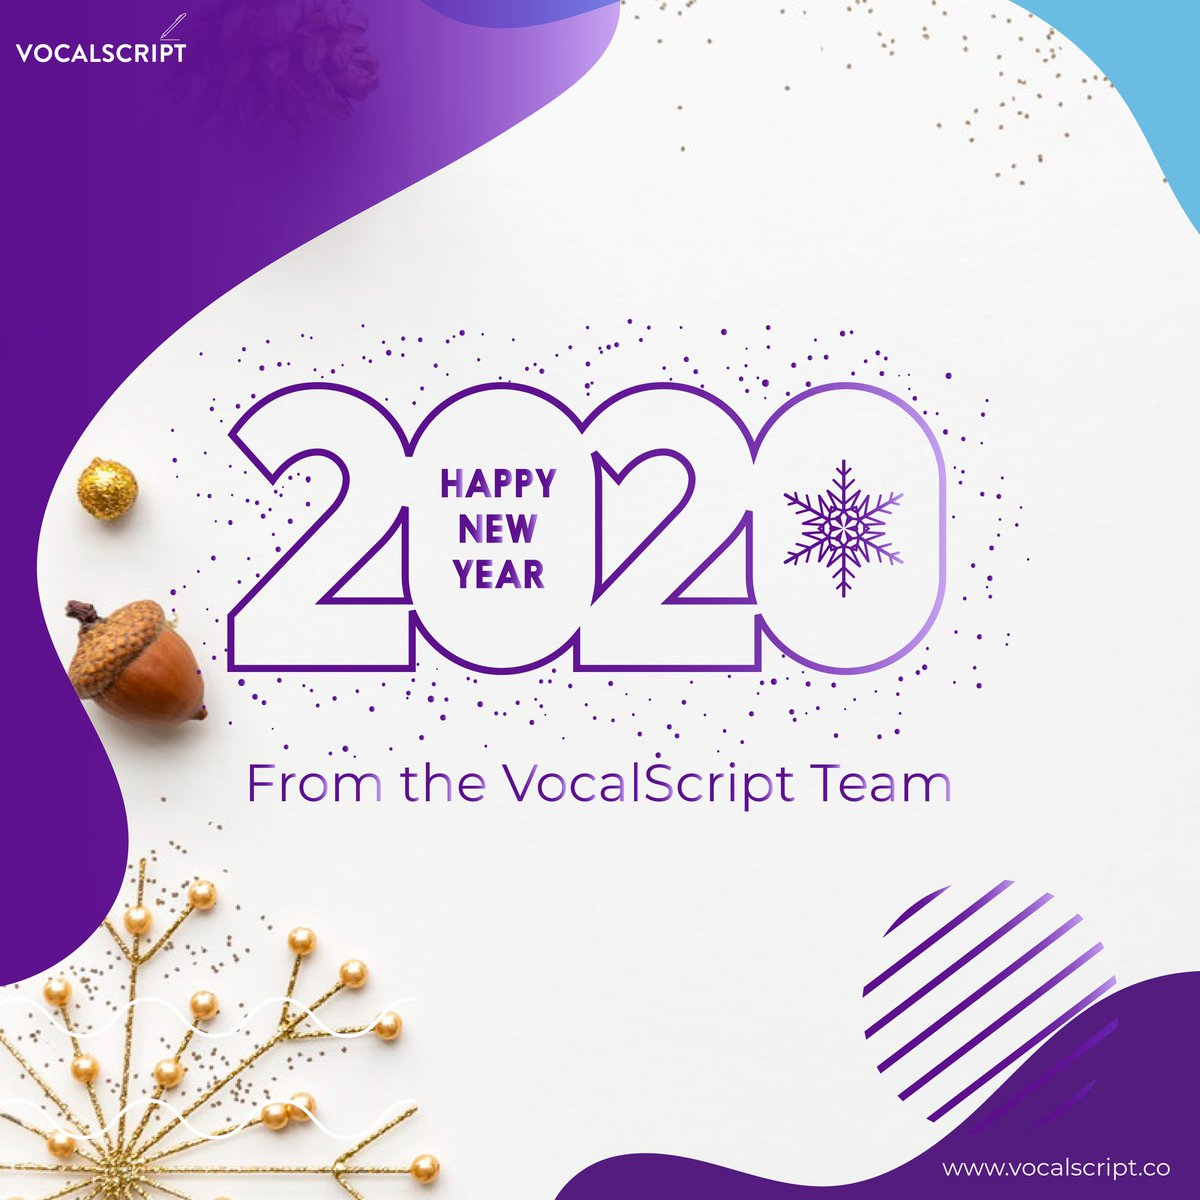 365 new days, 365 new chances. Cheers to a new decade!   #2020NewYear #newyear #holidays #productivity #transcription #closedcaptions #speechtotext #business #features #workflow #vocalscript #efficienct #tools #startup #nigeriastartups #nigeriatranscription #deadlinespic.twitter.com/1MNrndiPqb